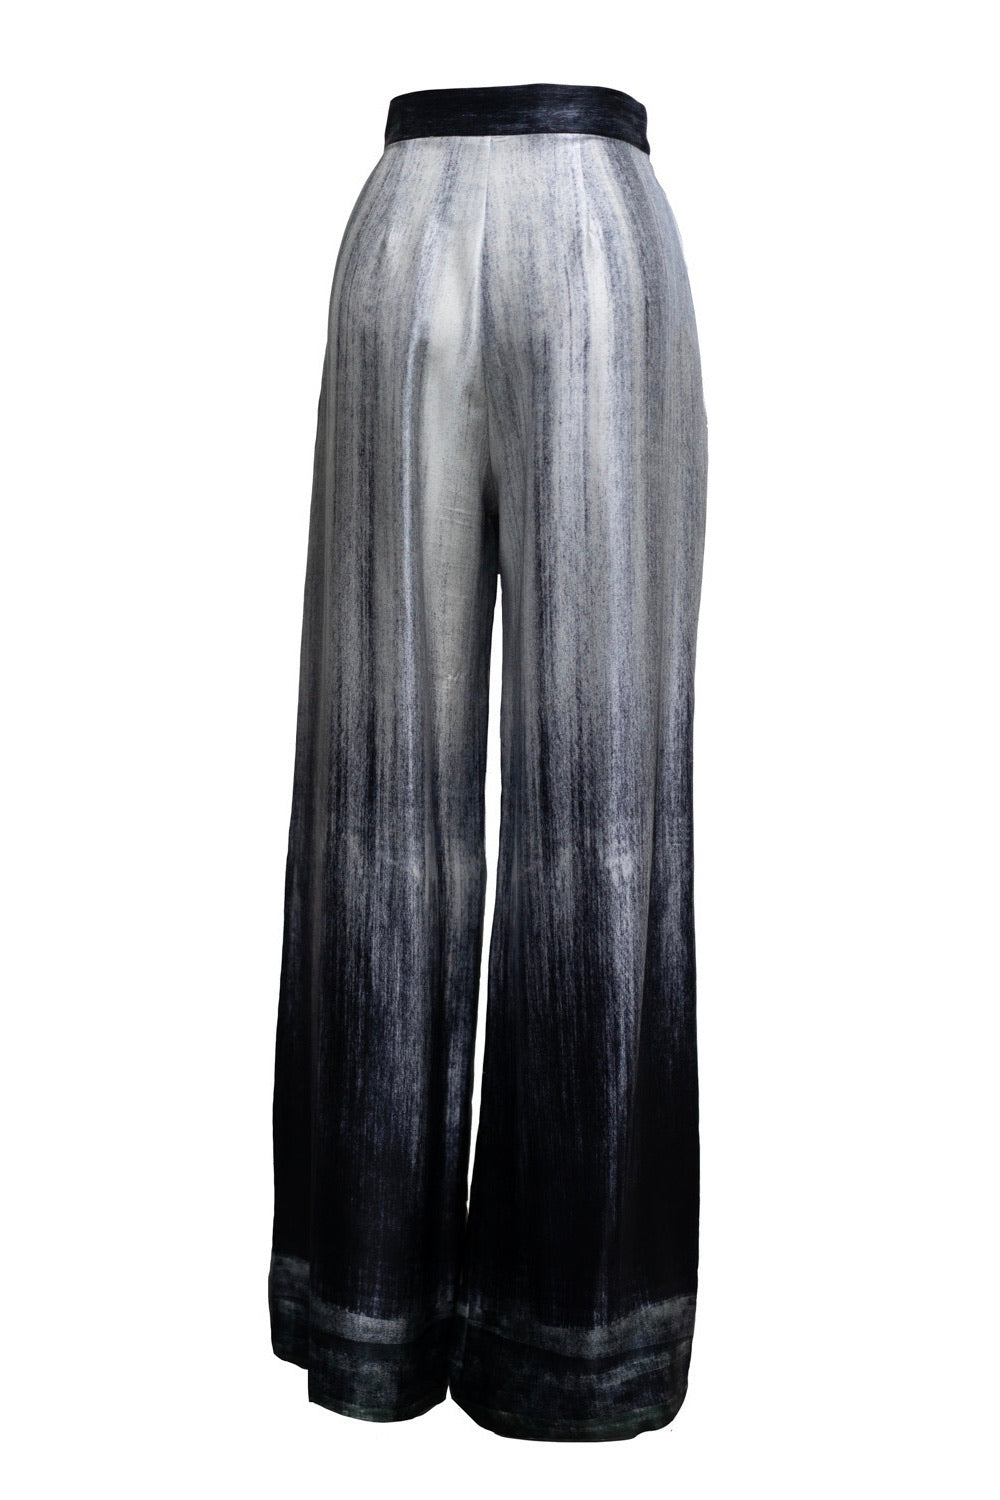 The Charred Willow Palazzo Pant